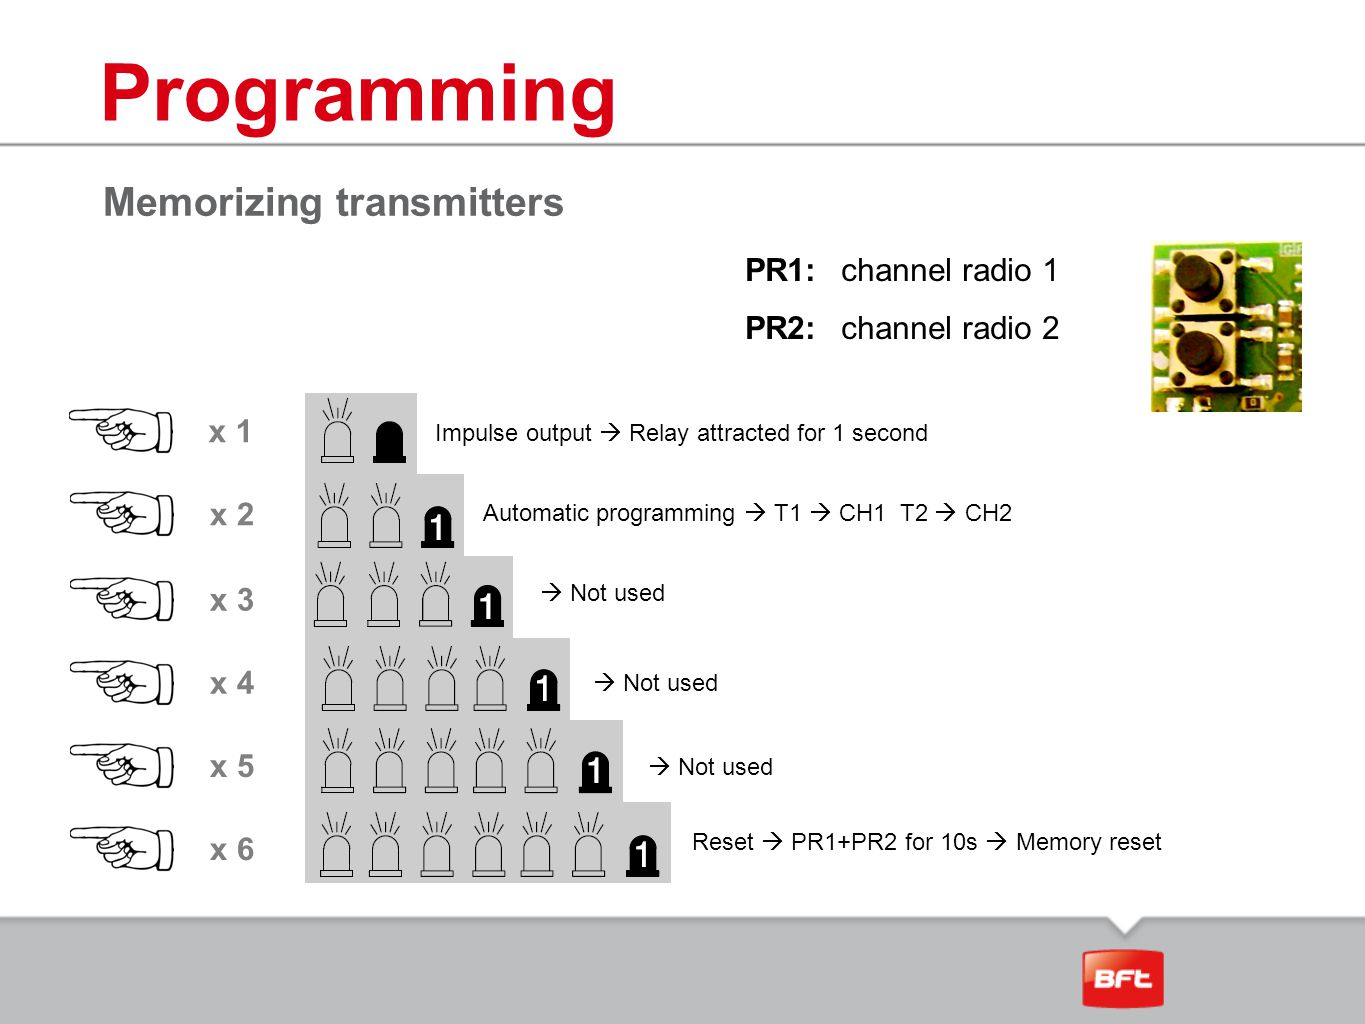 Programming Memorizing transmitters PR1:channel radio 1 PR2:channel radio 2 Impulse output  Relay attracted for 1 second  Not used Automatic programming  T1  CH1 T2  CH2  Not used Reset  PR1+PR2 for 10s  Memory reset x 1 x 2 x 3 x 4 x 5 x 6